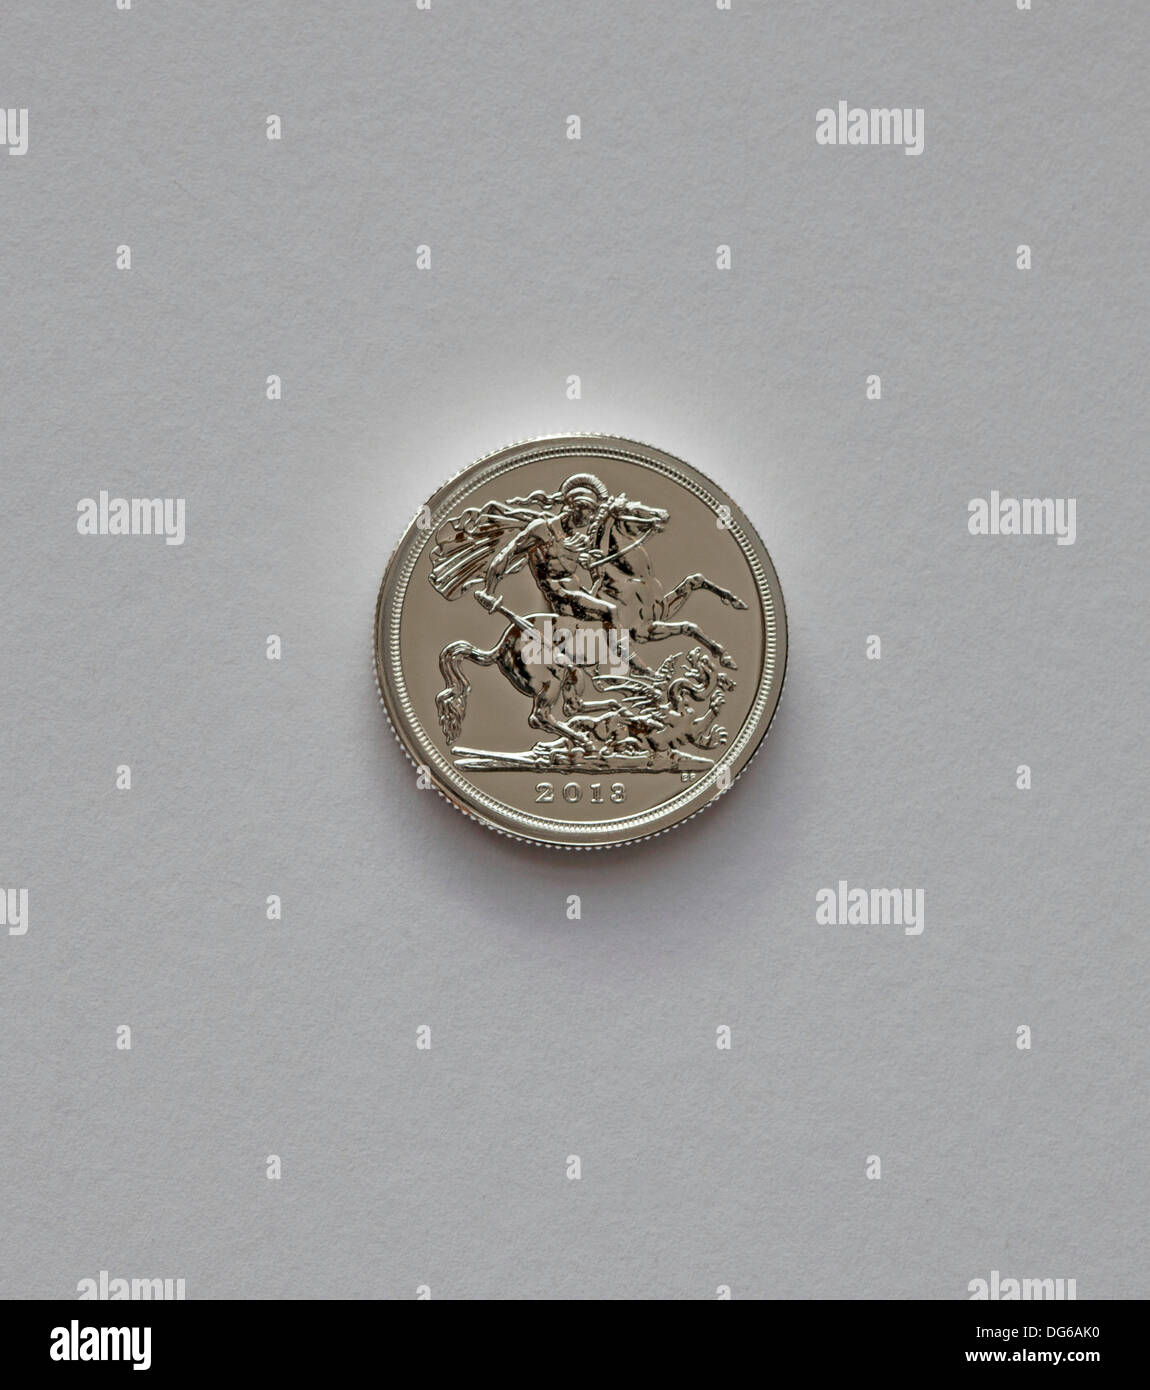 UK. 15th Oct. 2013, the Royal Mint releases United Kingdom's first ever £20 coin to those who had it on special order. The coin will go on general release on 31st October 2013. The George and the Dragon 2013 £20 Fine Silver Coin. It is minted in fine silver and carries one of the most famous designs ever to feature on Britain's coins, the design was made famous on the gold Sovereign. The coin is legal tender. - Stock Image